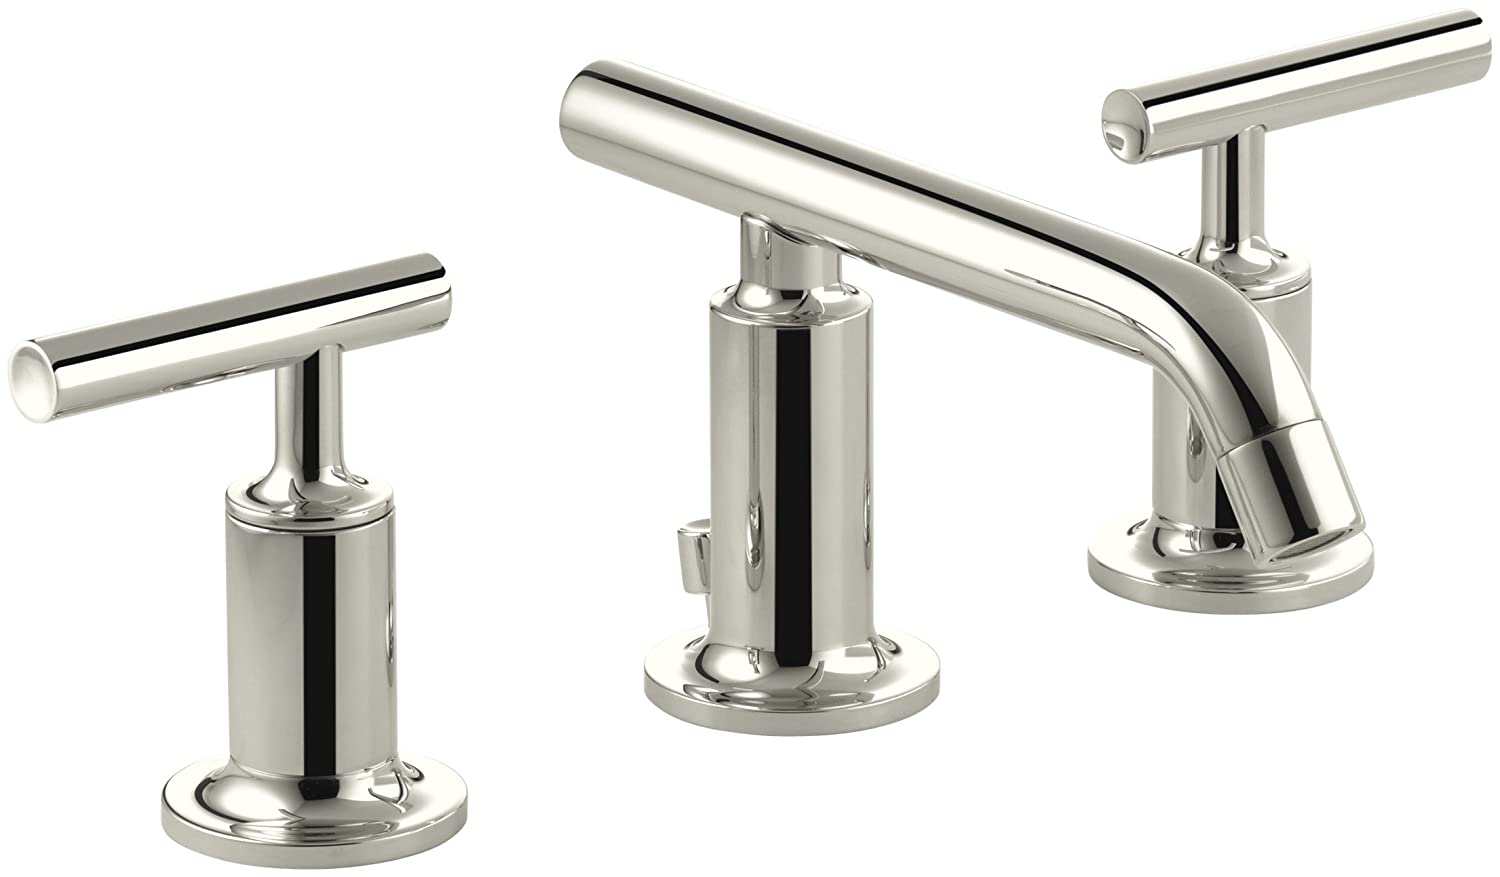 KOHLER K-14410-4-BGD Purist Widespread Bathroom Sink Faucet with ...